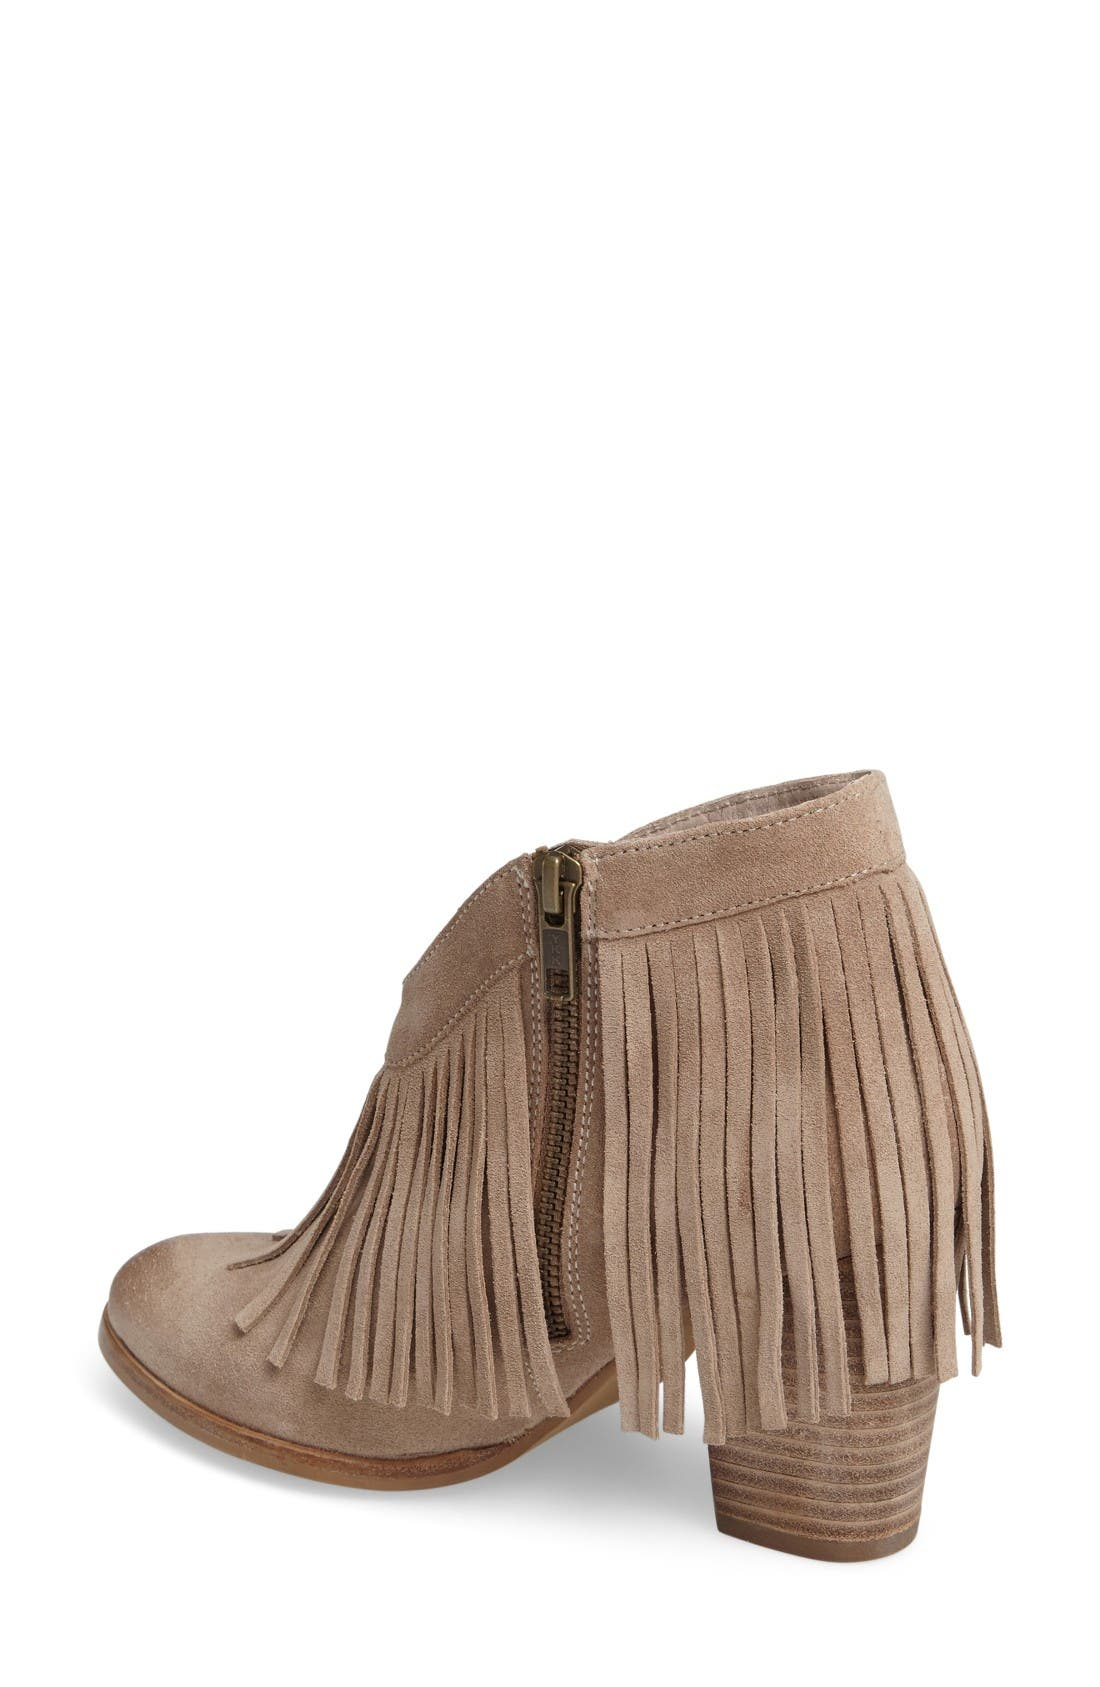 Alternate Image 2  - Ariat Unbridled Layla Fringed Bootie (Women)